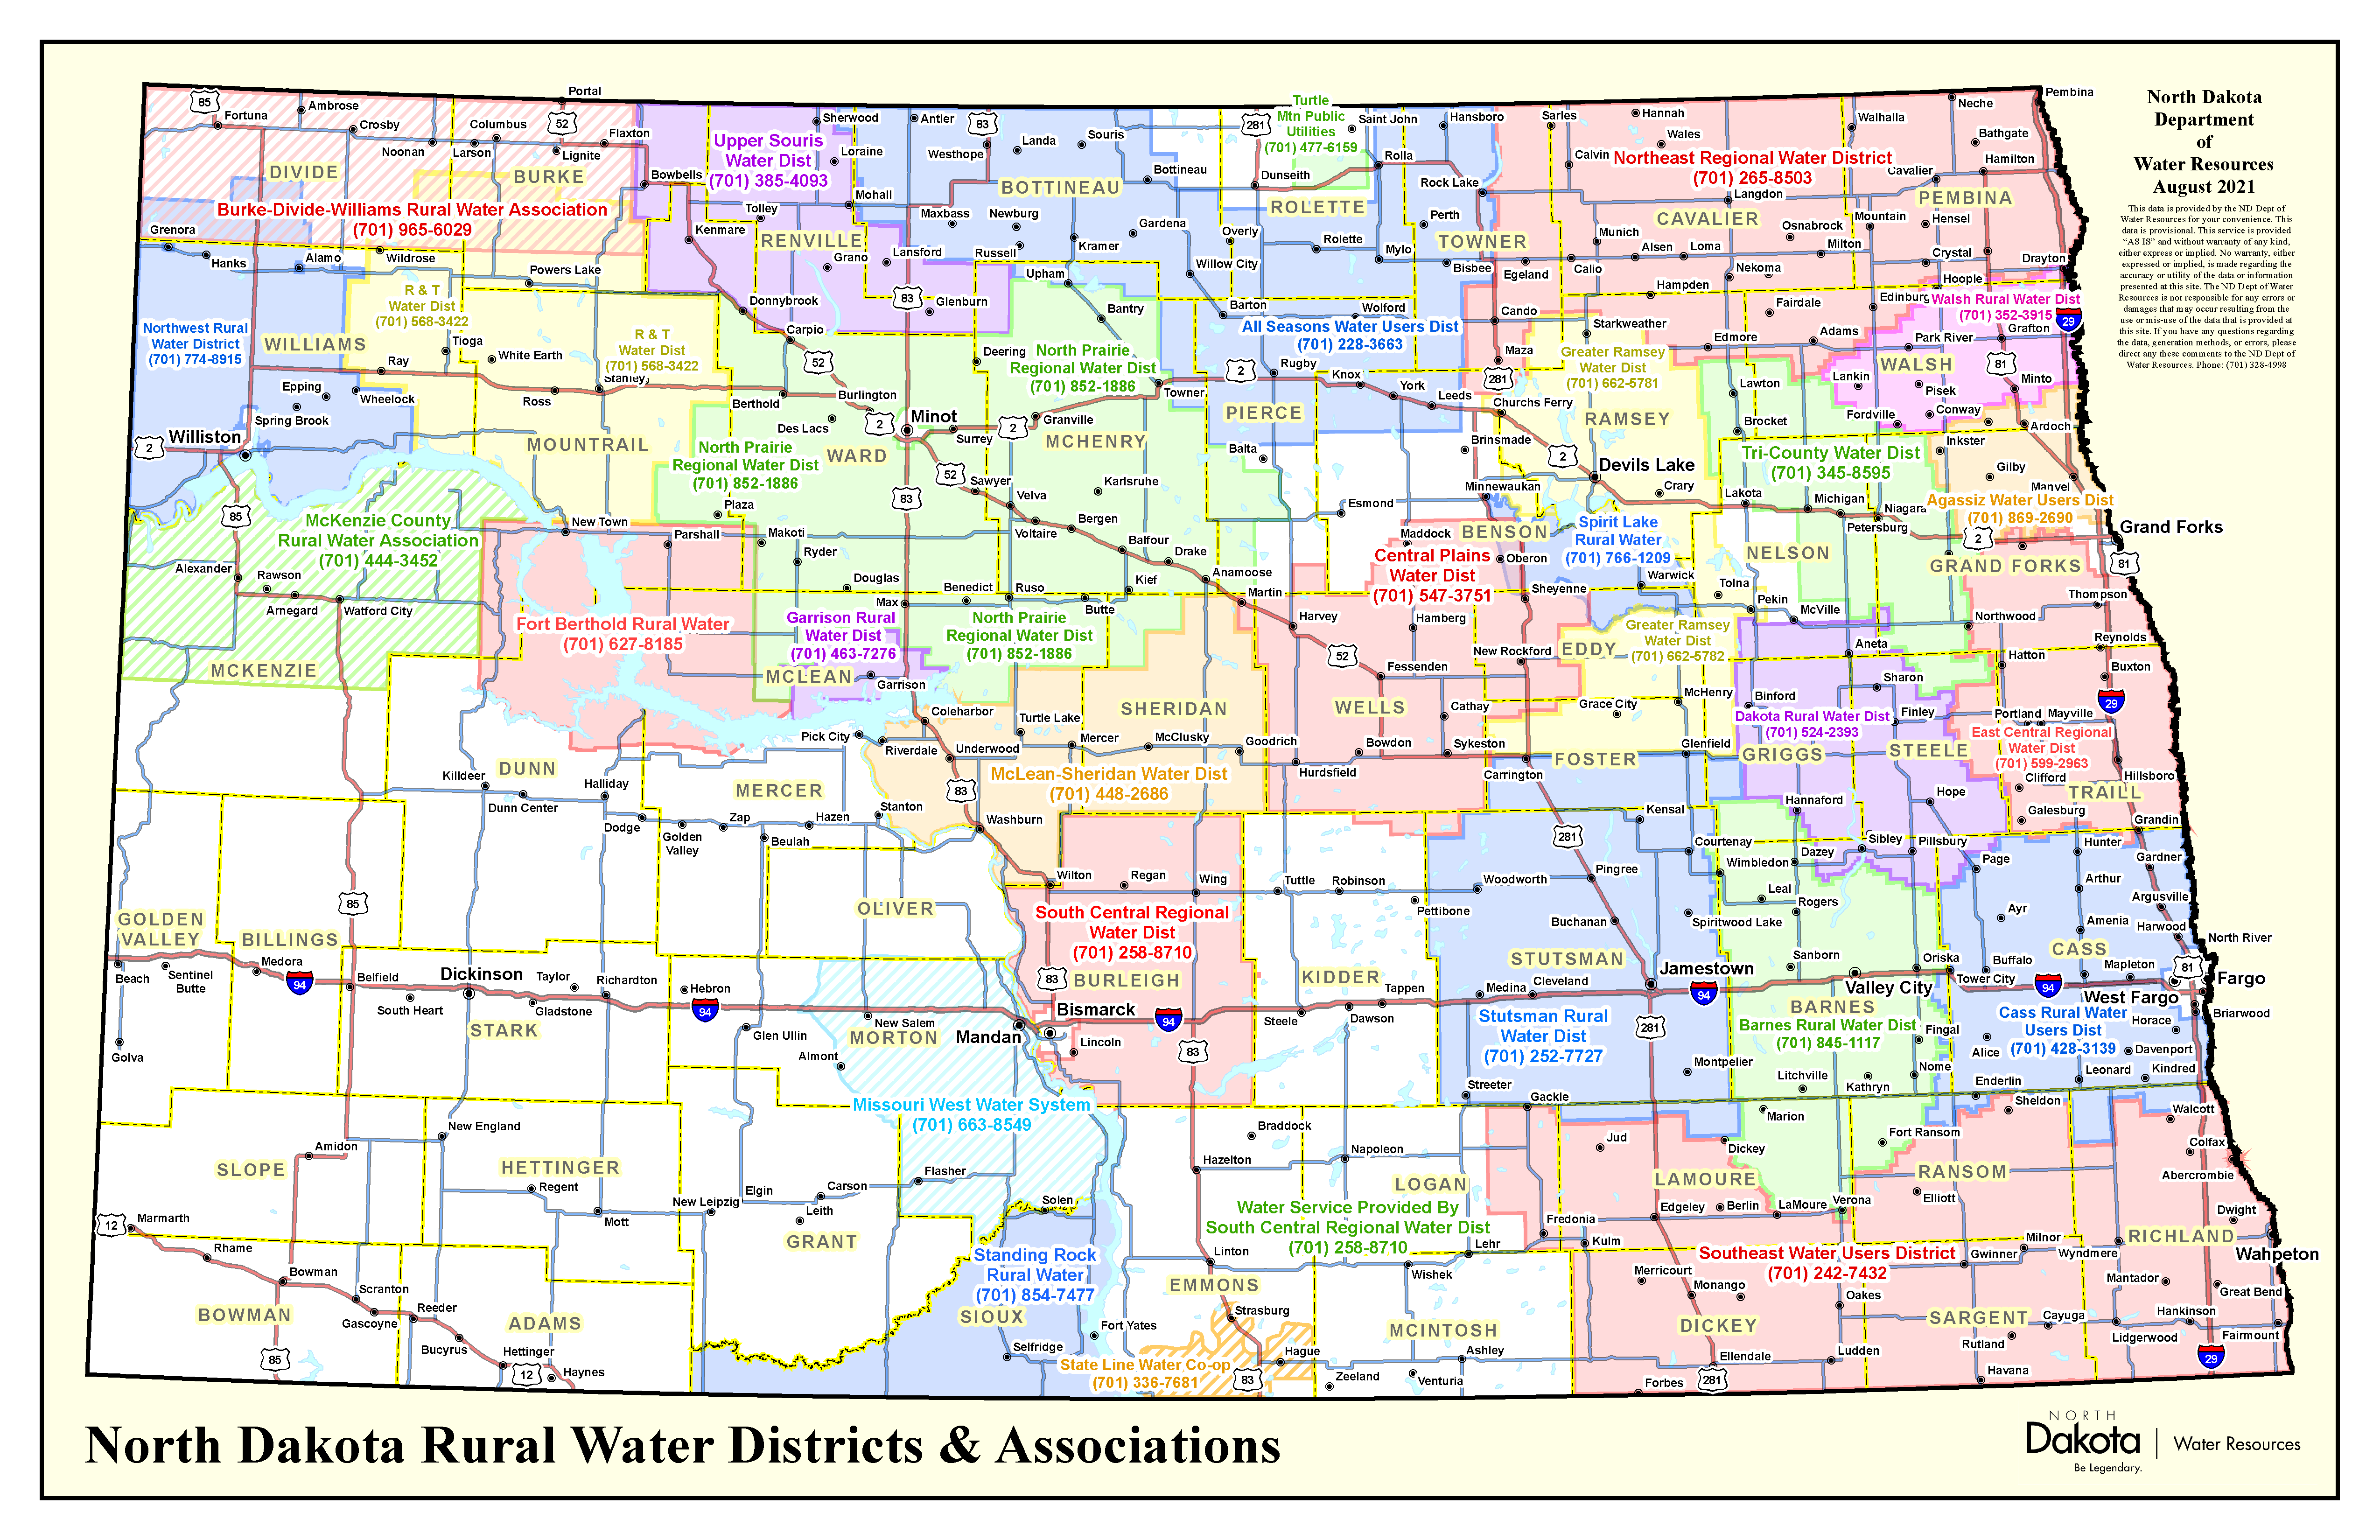 North Dakota Rural Water Systems ociation - Listing on keene vermont map, grassy butte nd map, keene state college area map, keene nd, keene city map, keene california map, keene nh map, keene north dakota weather, miami postal code map,